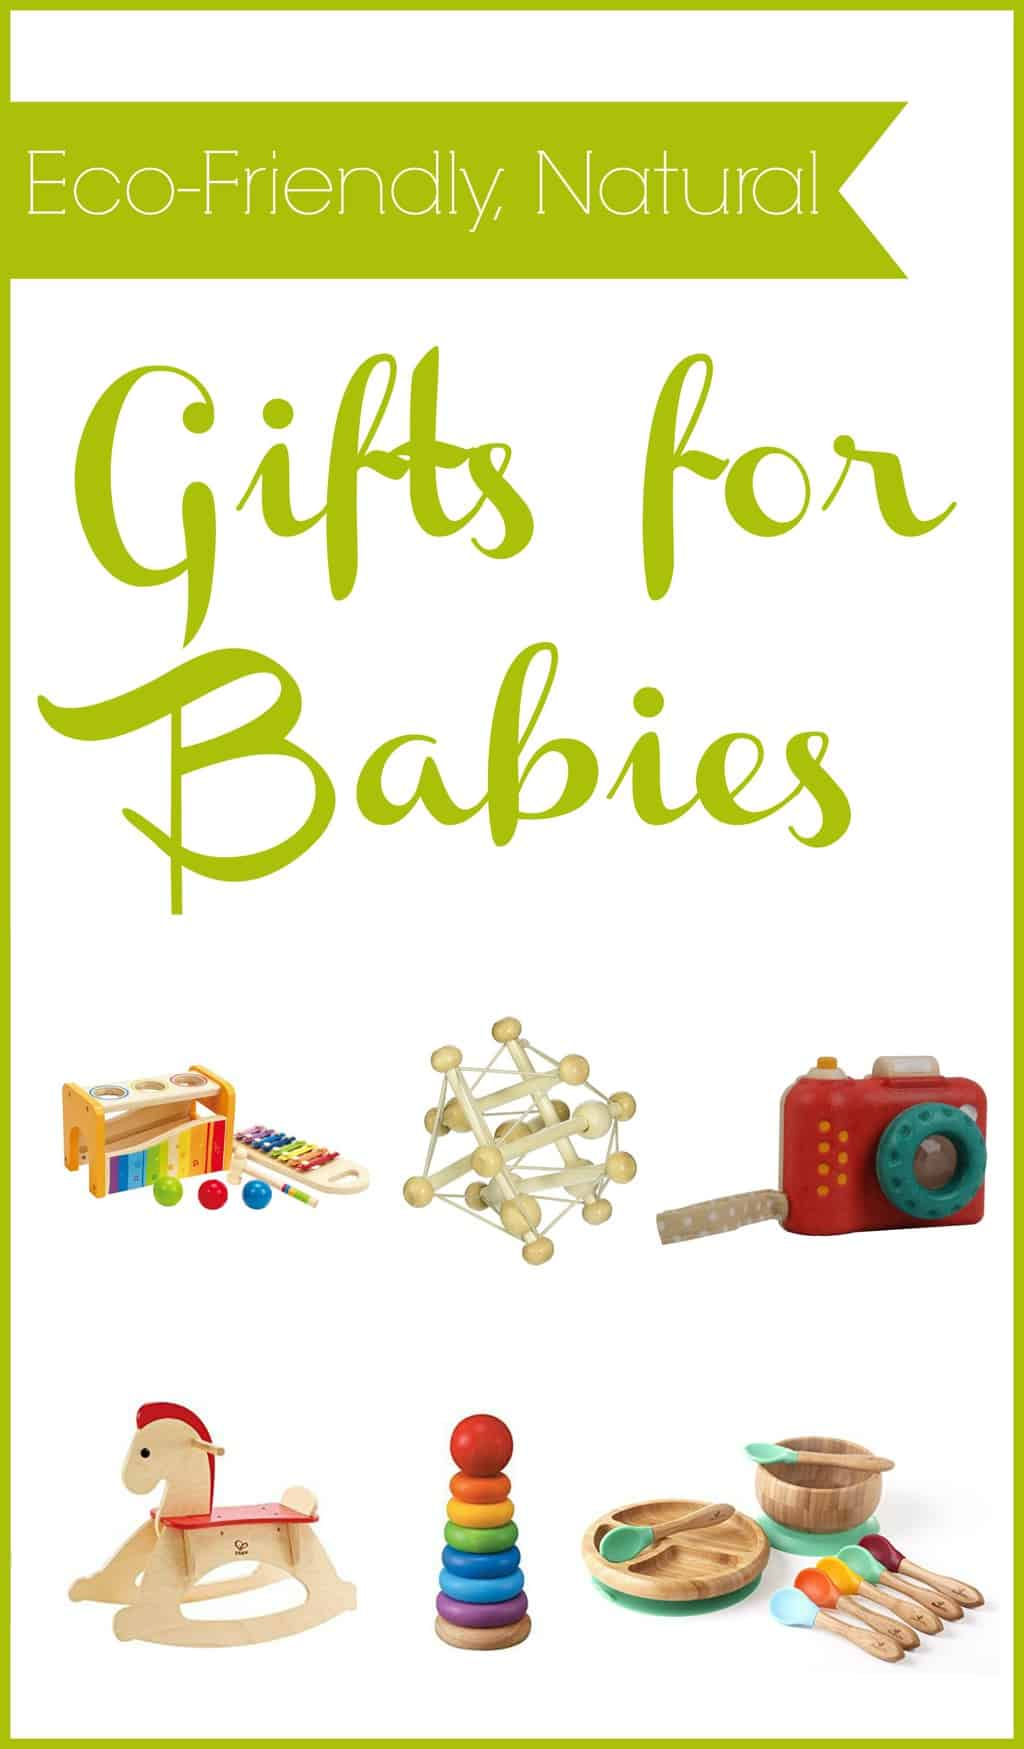 Eco-friendly, Natural Gifts for Babies - great gift natural gift ideas for the babies. No toxins here.